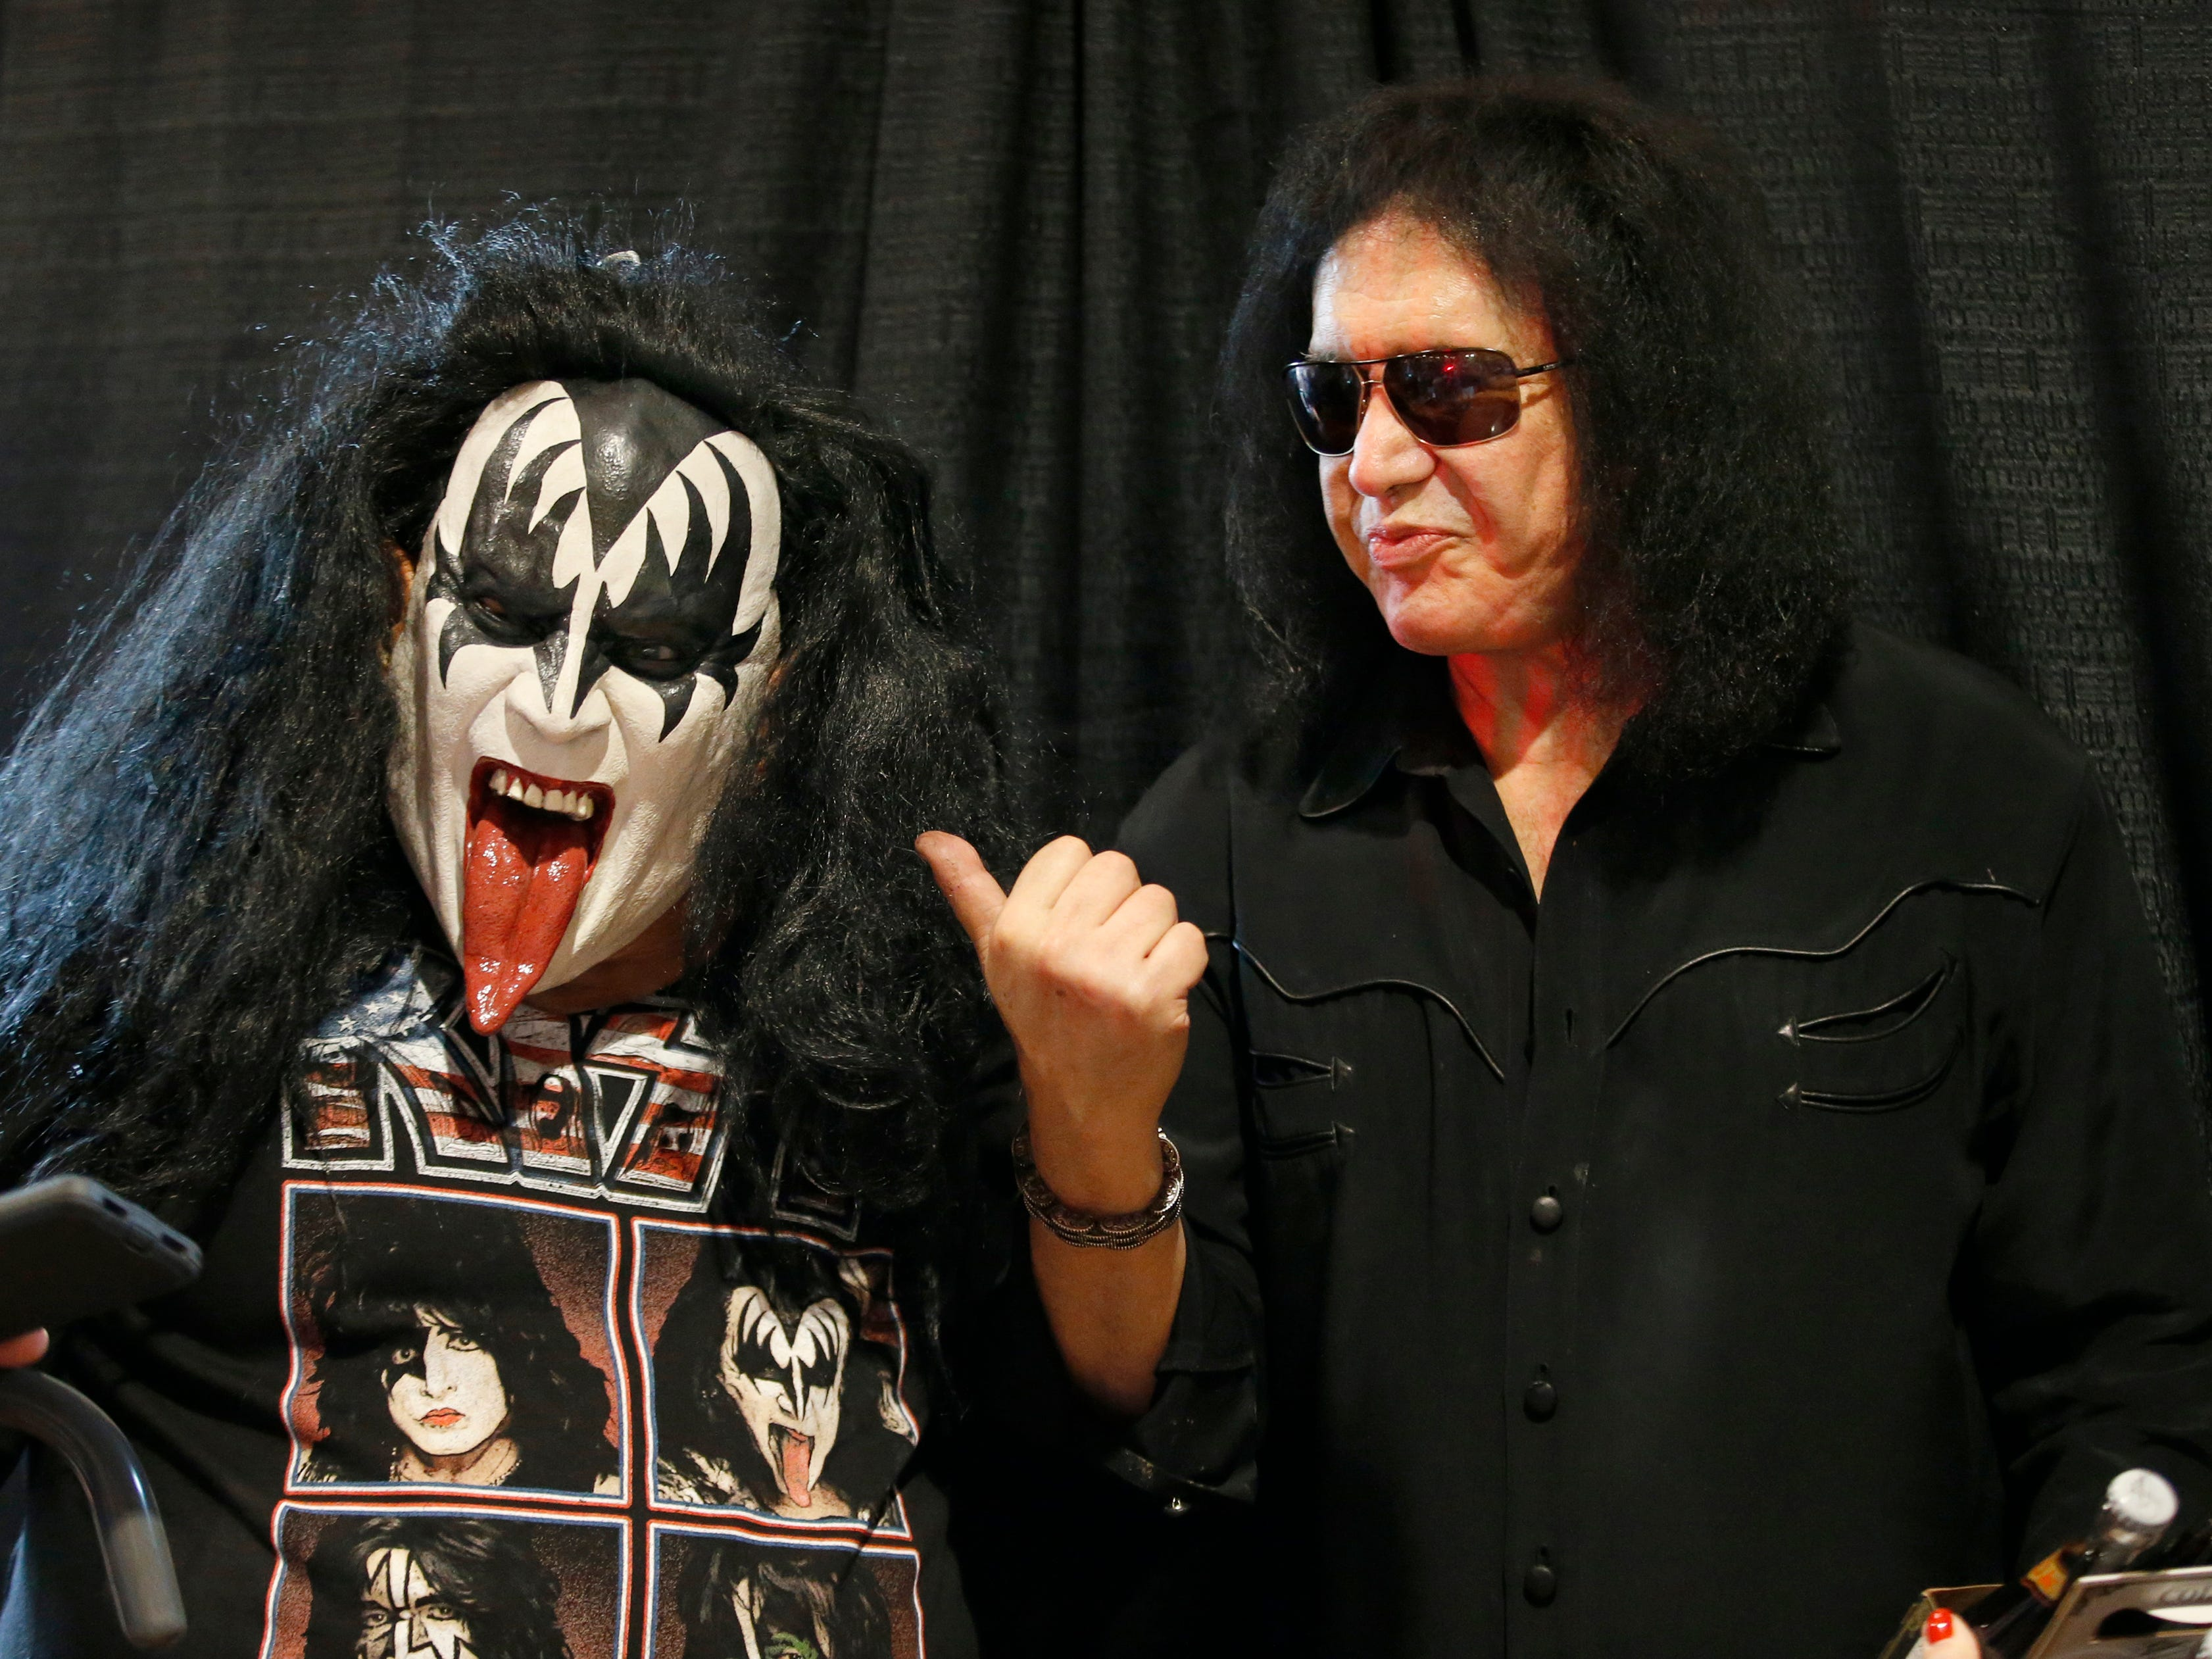 Fan John Cook of Greece, wears a mask with the face of KISS co-founder Gene Simmons who made an appearance at the Chili-Paul Wegmans store to promote his MoneyBag Sodas.